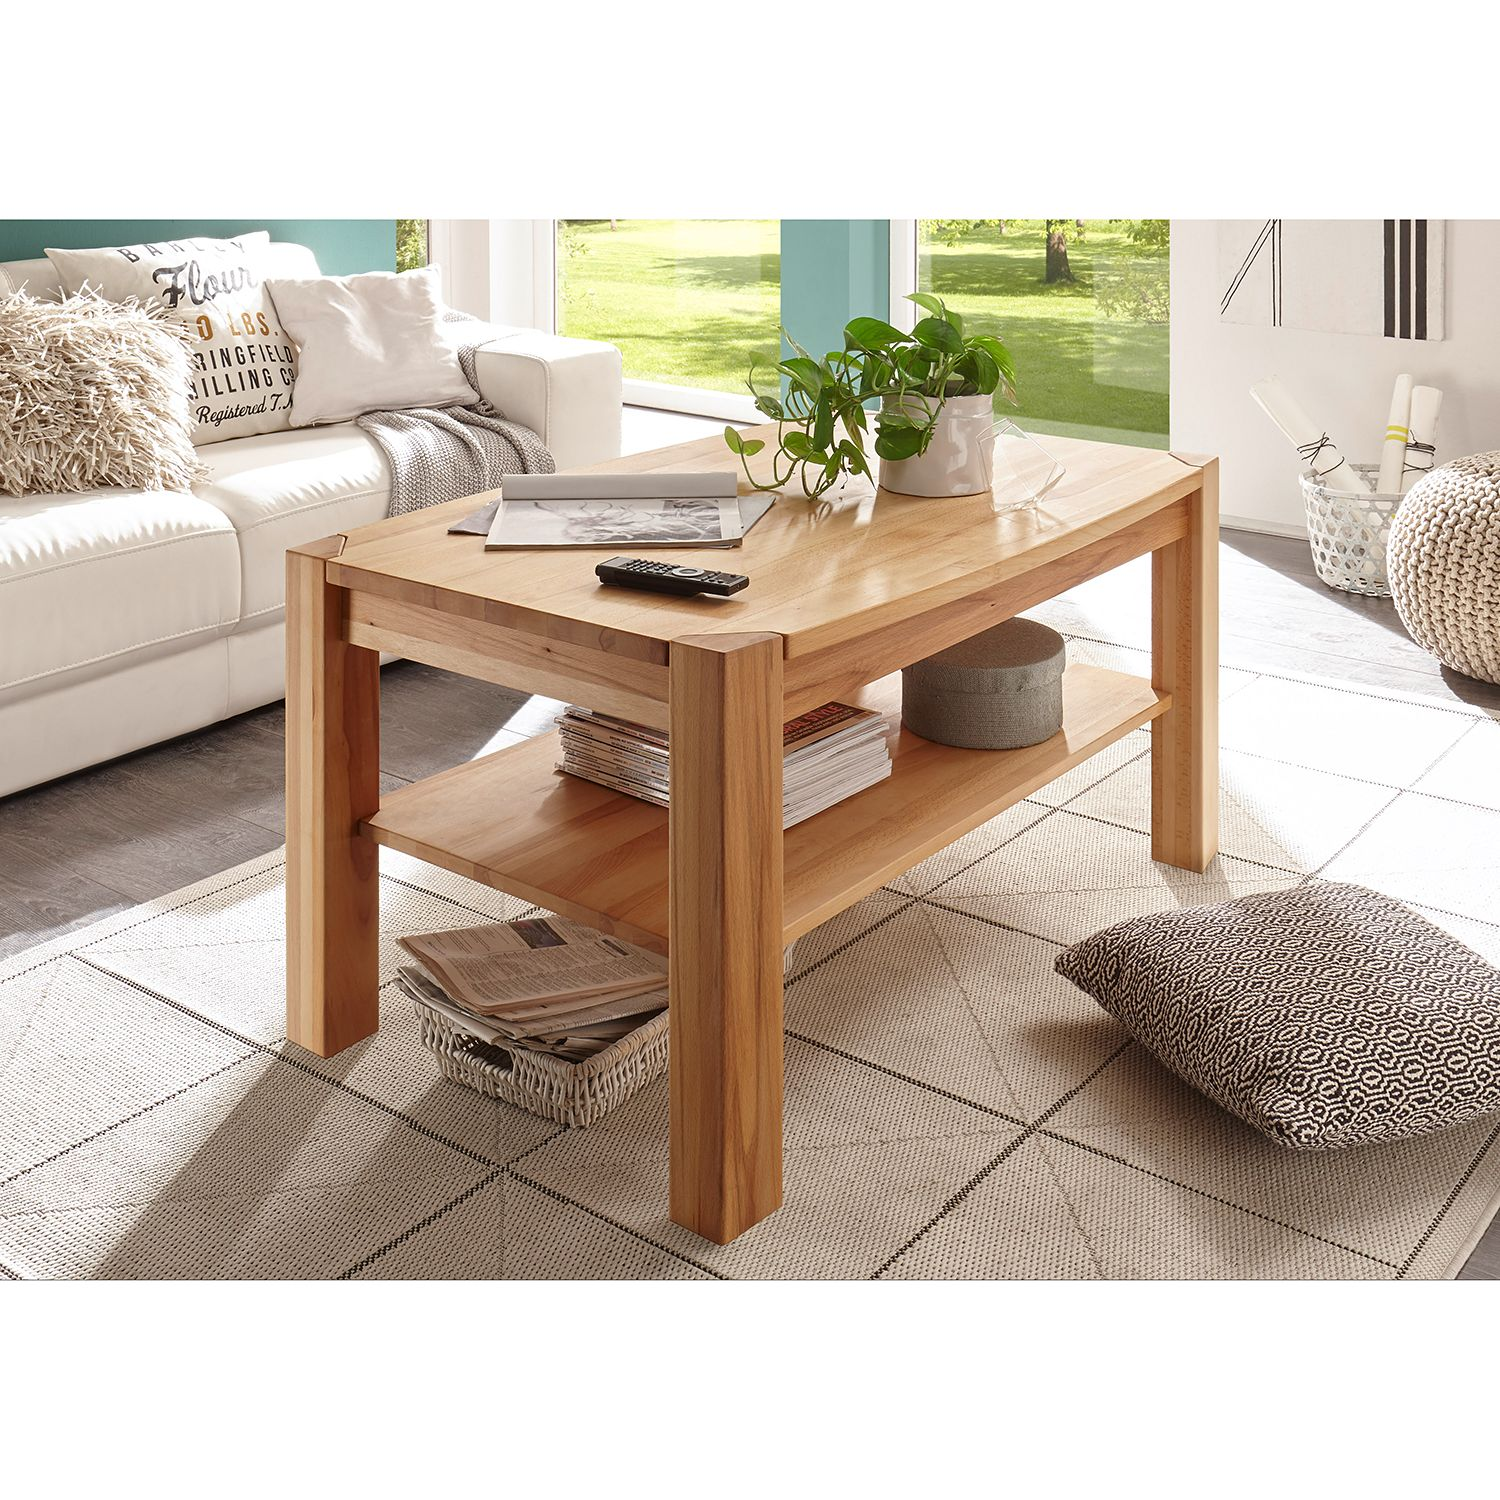 Table basse Lunow